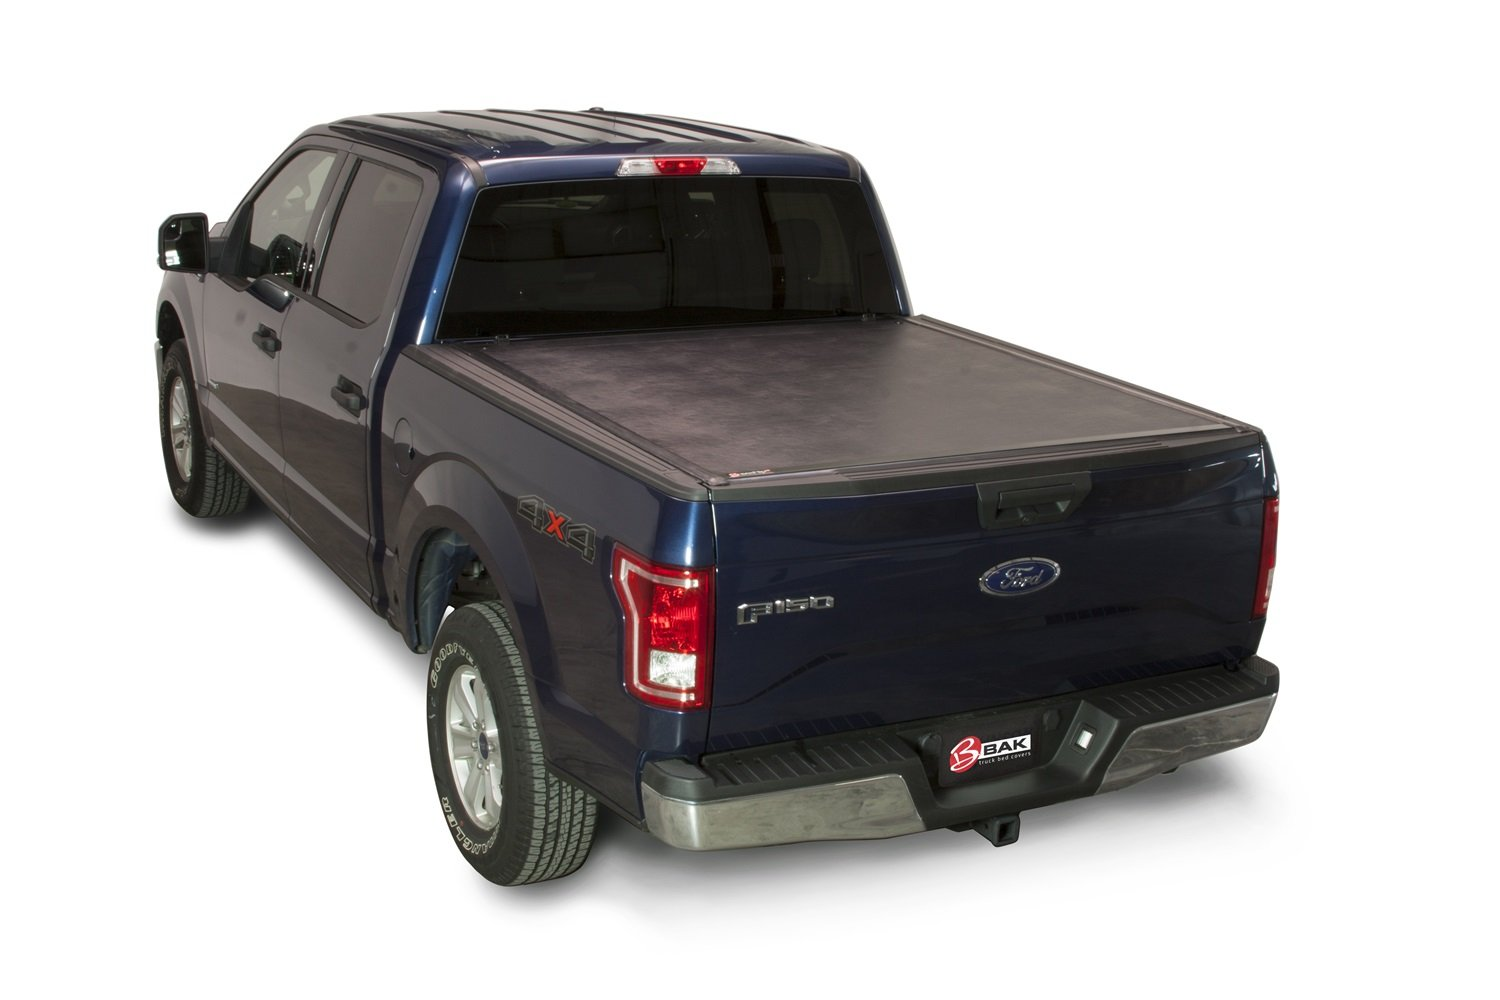 Amazon com bak industries 162309 bakflip vp vinyl series hard folding truck bed cover without cargo channel system available while supplies last bakflip